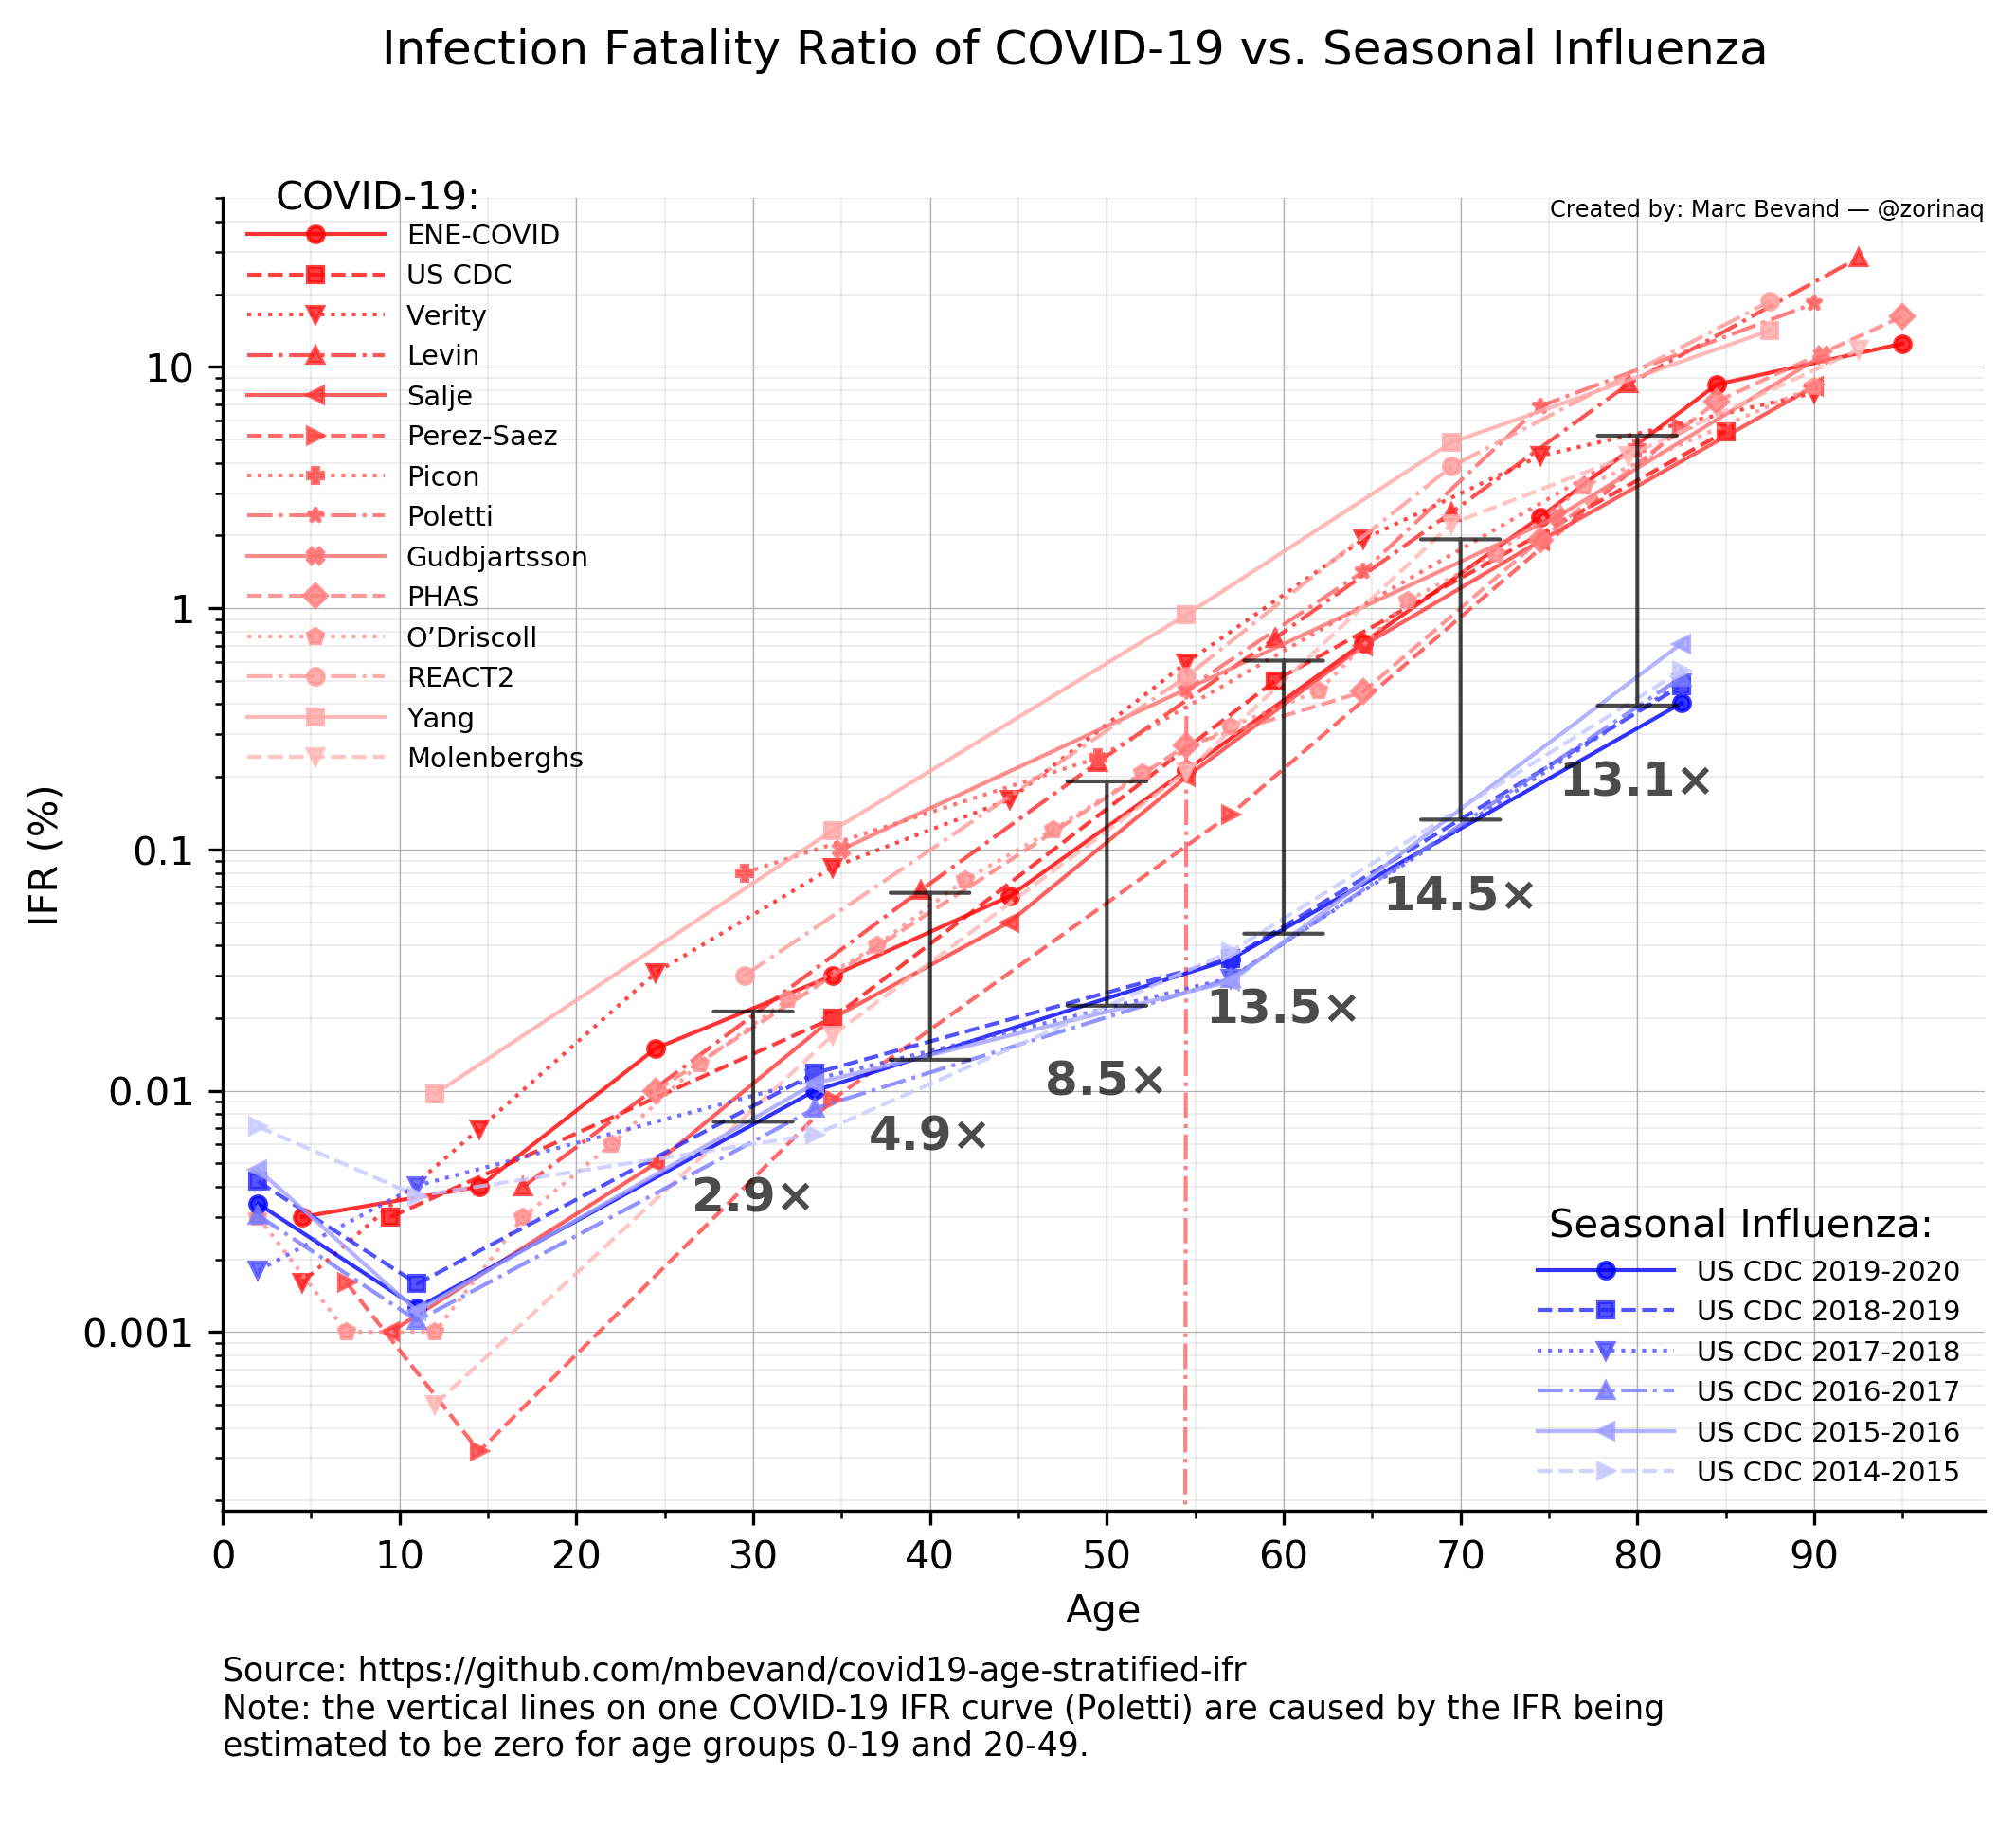 ifr-corona-flu-comparison.png